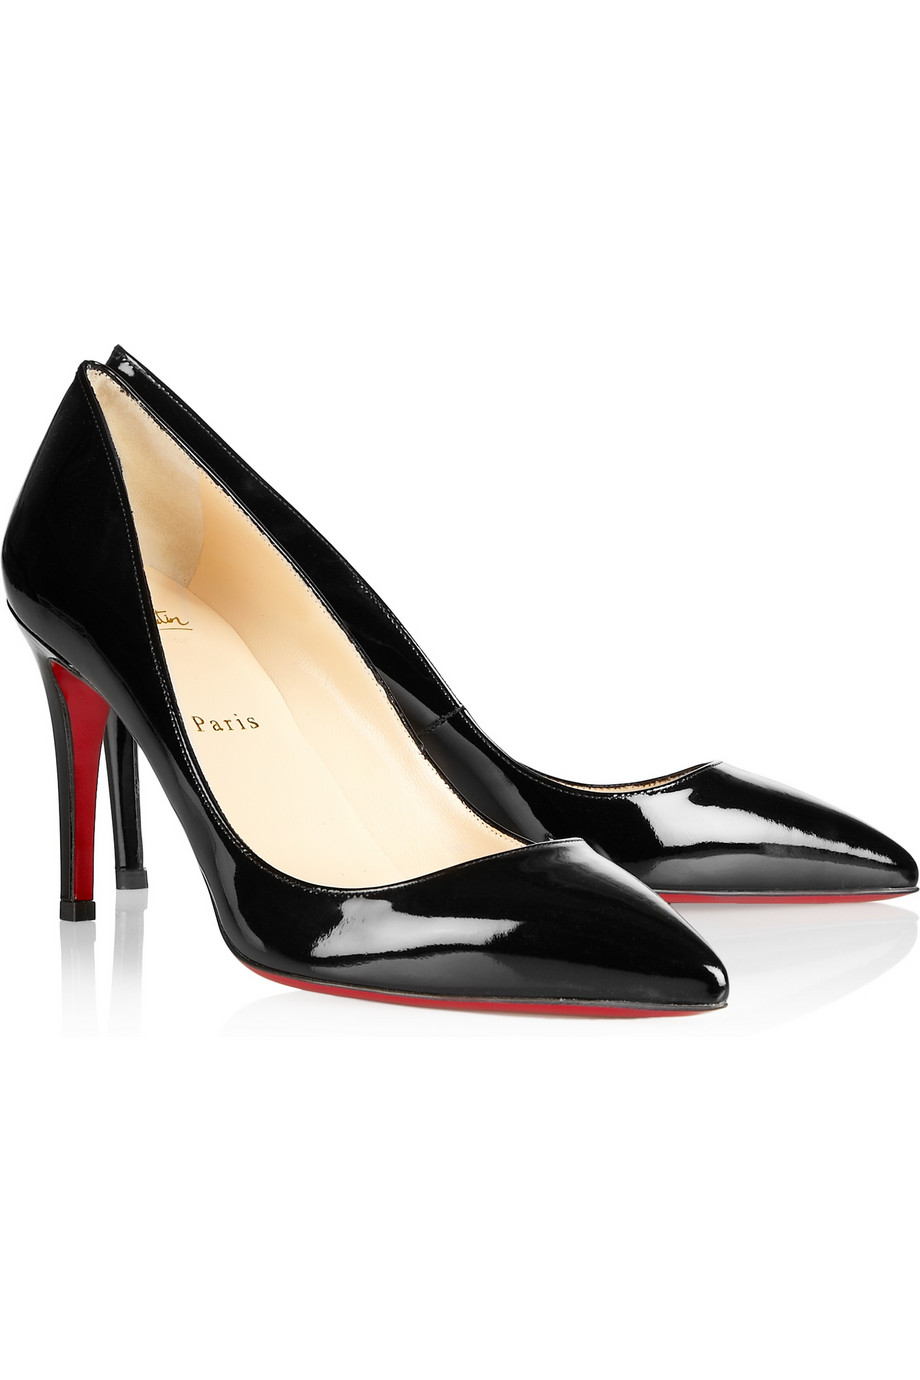 louboutin pigalle 85 black leather